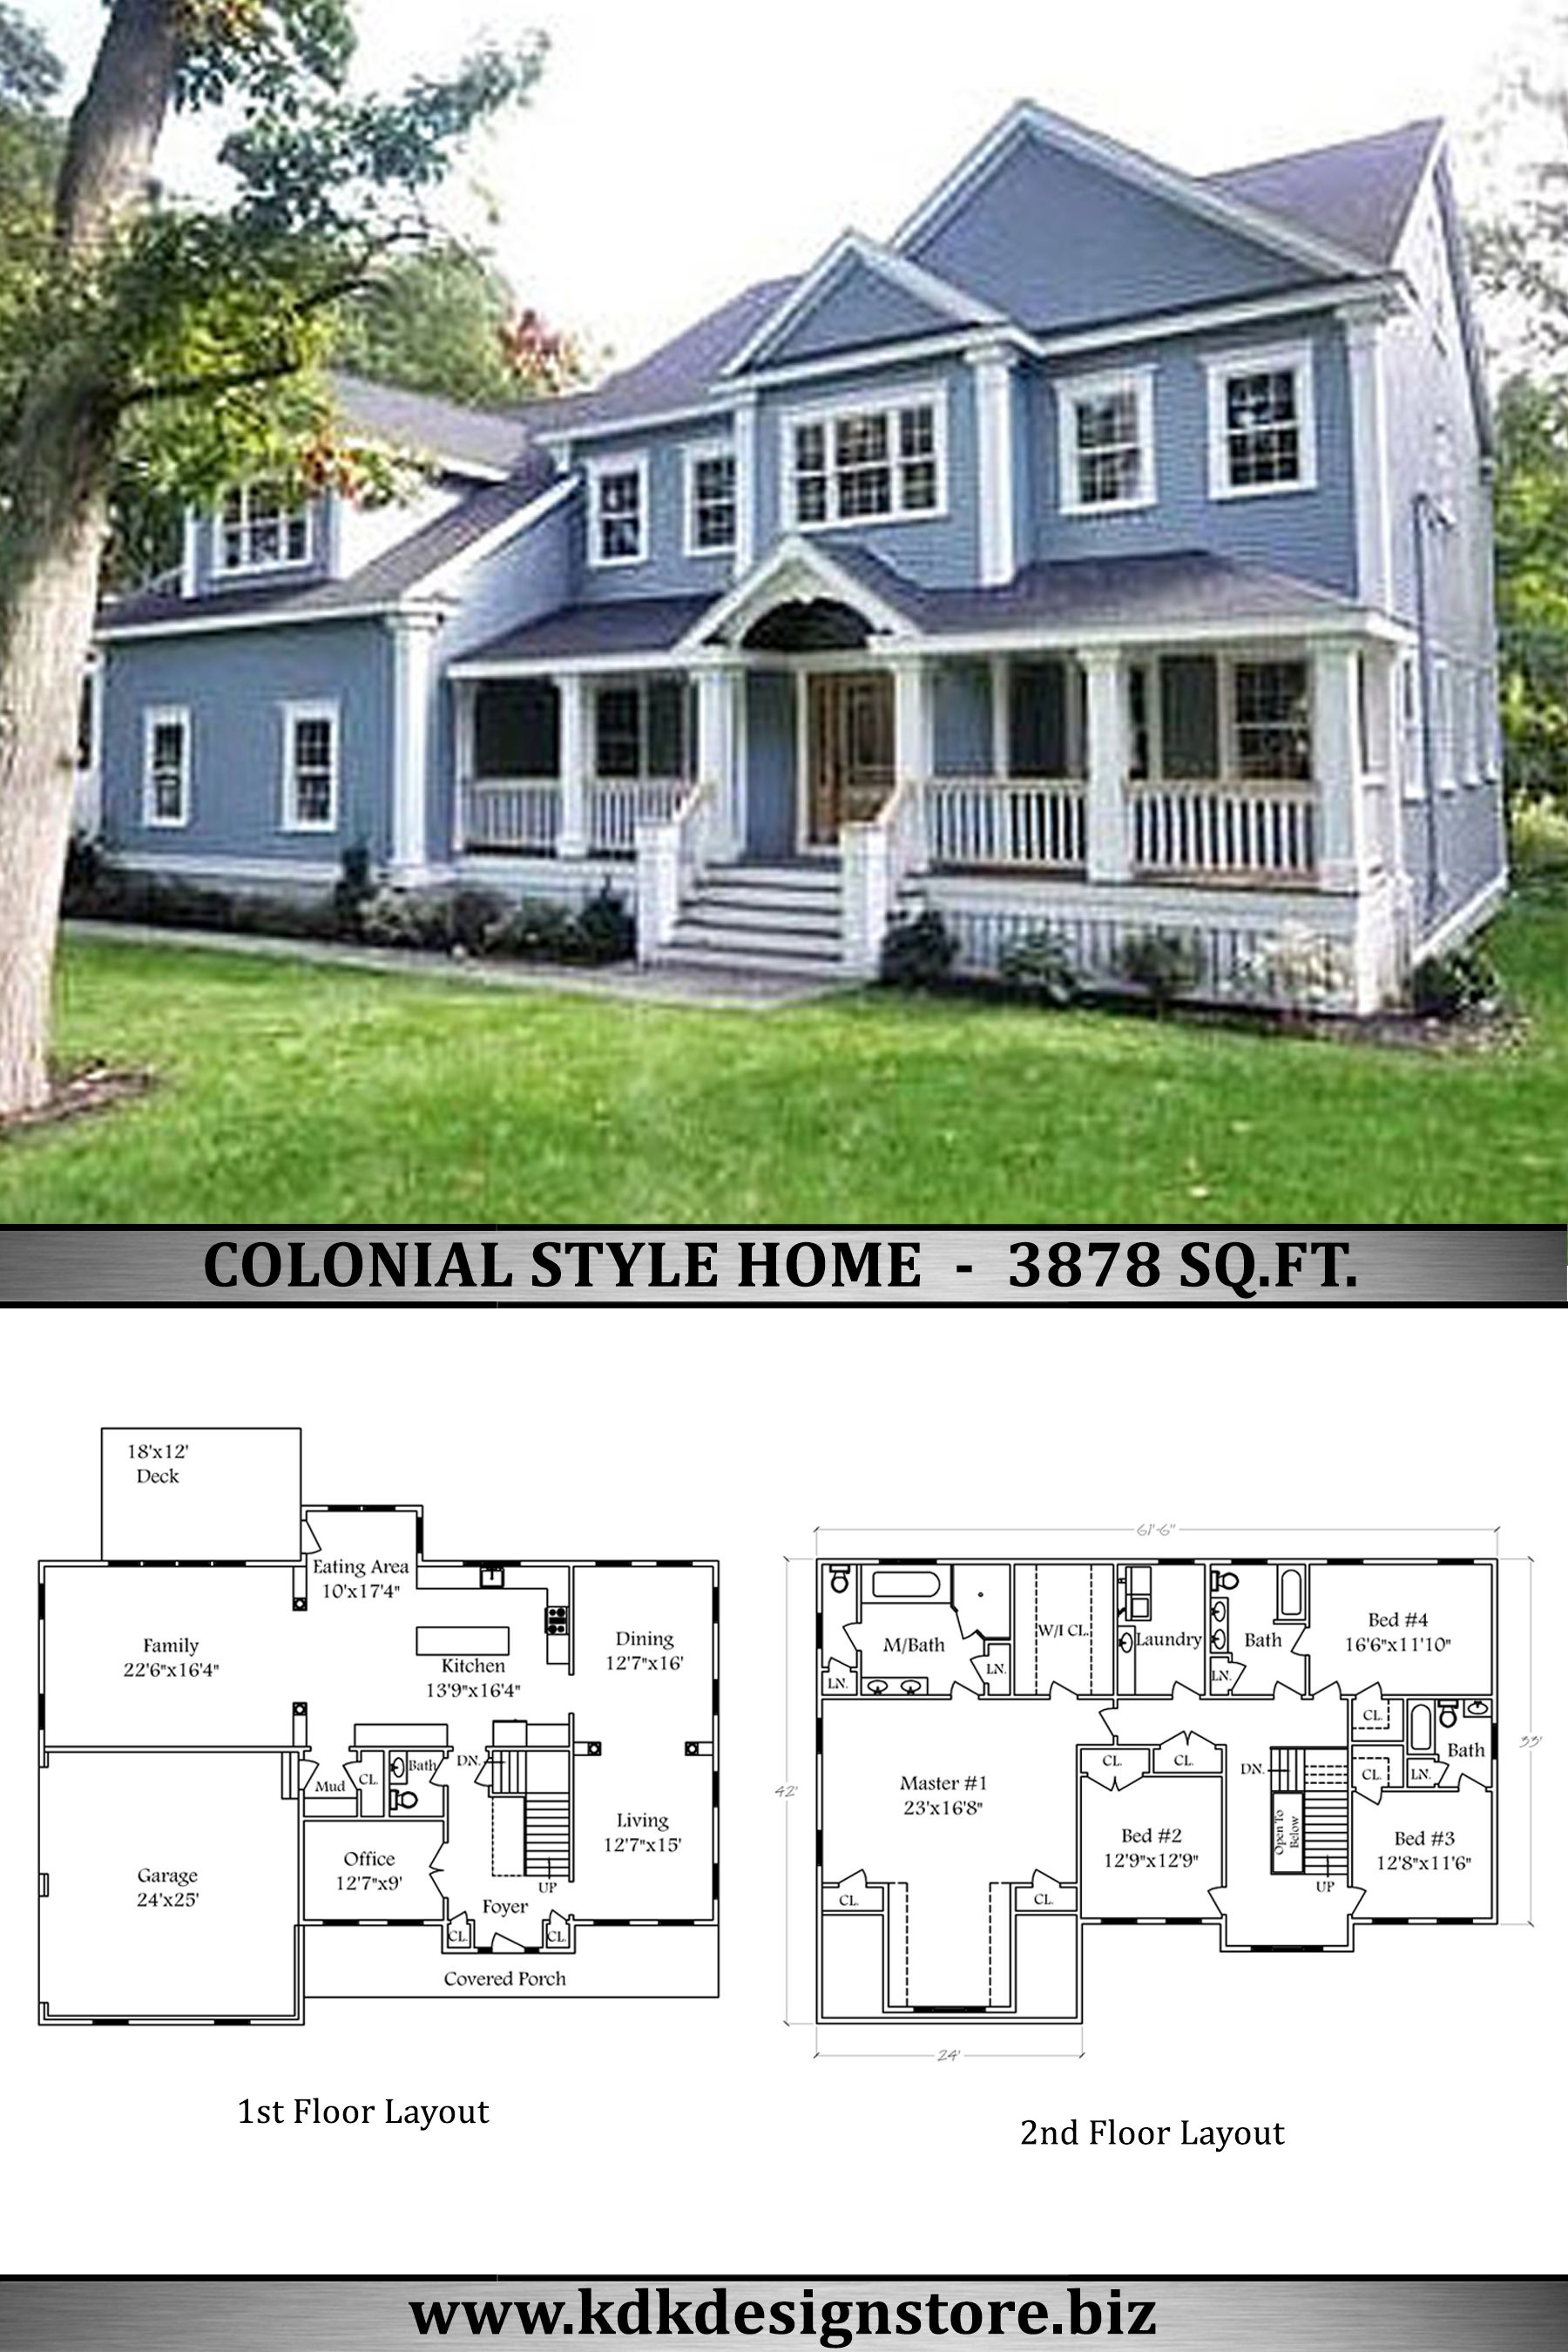 Colonial House Plan 3878 Sq Ft Colonial House Plans Colonial House House Plans